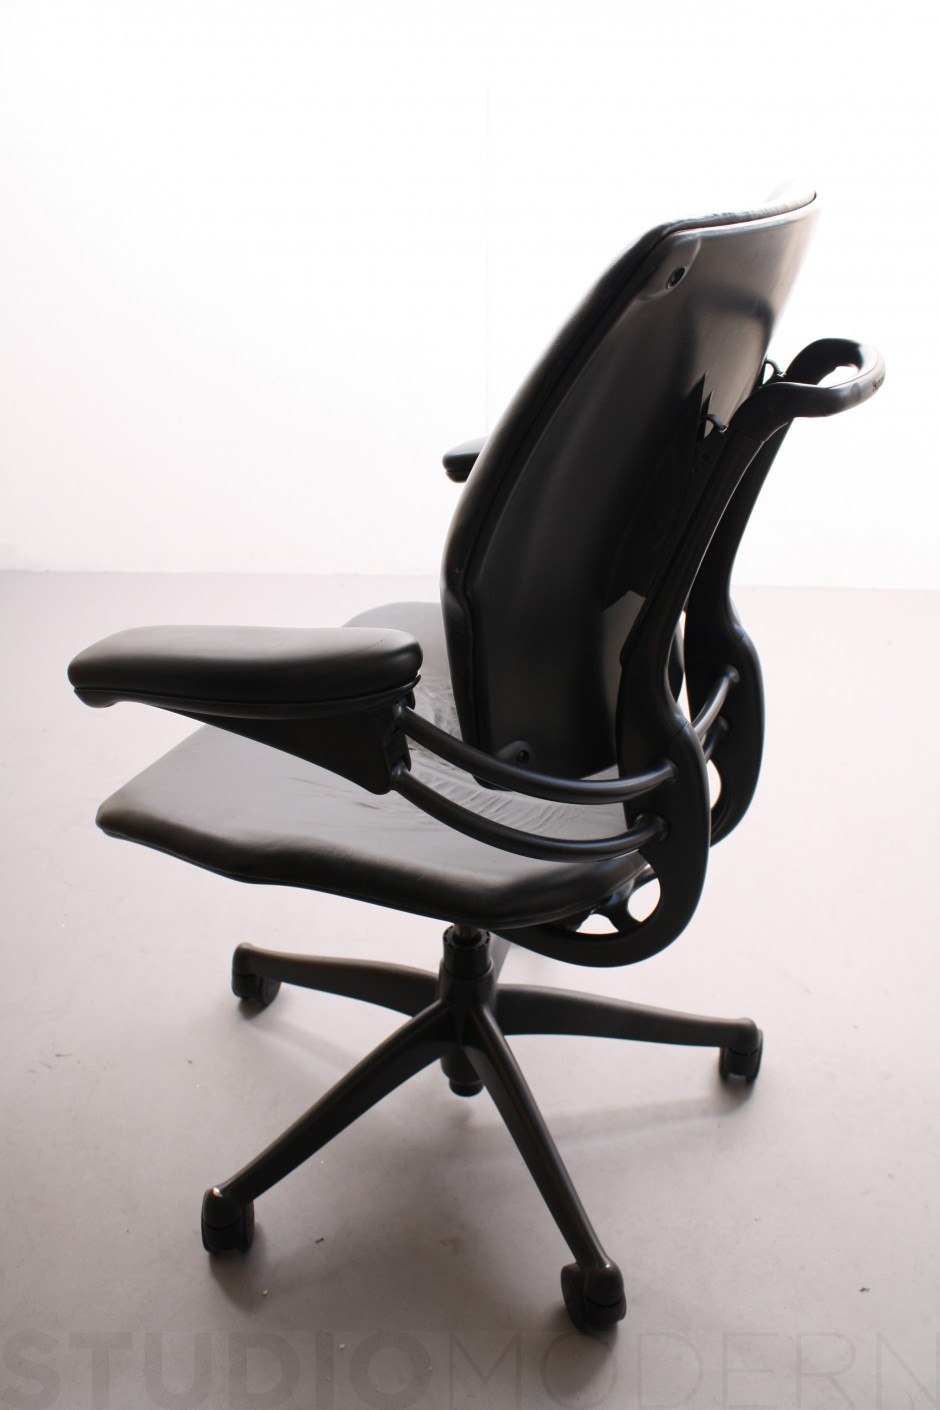 Desk Chair With Headrest | Humanscale Freedom Chair | Humanscale Freedom Chair